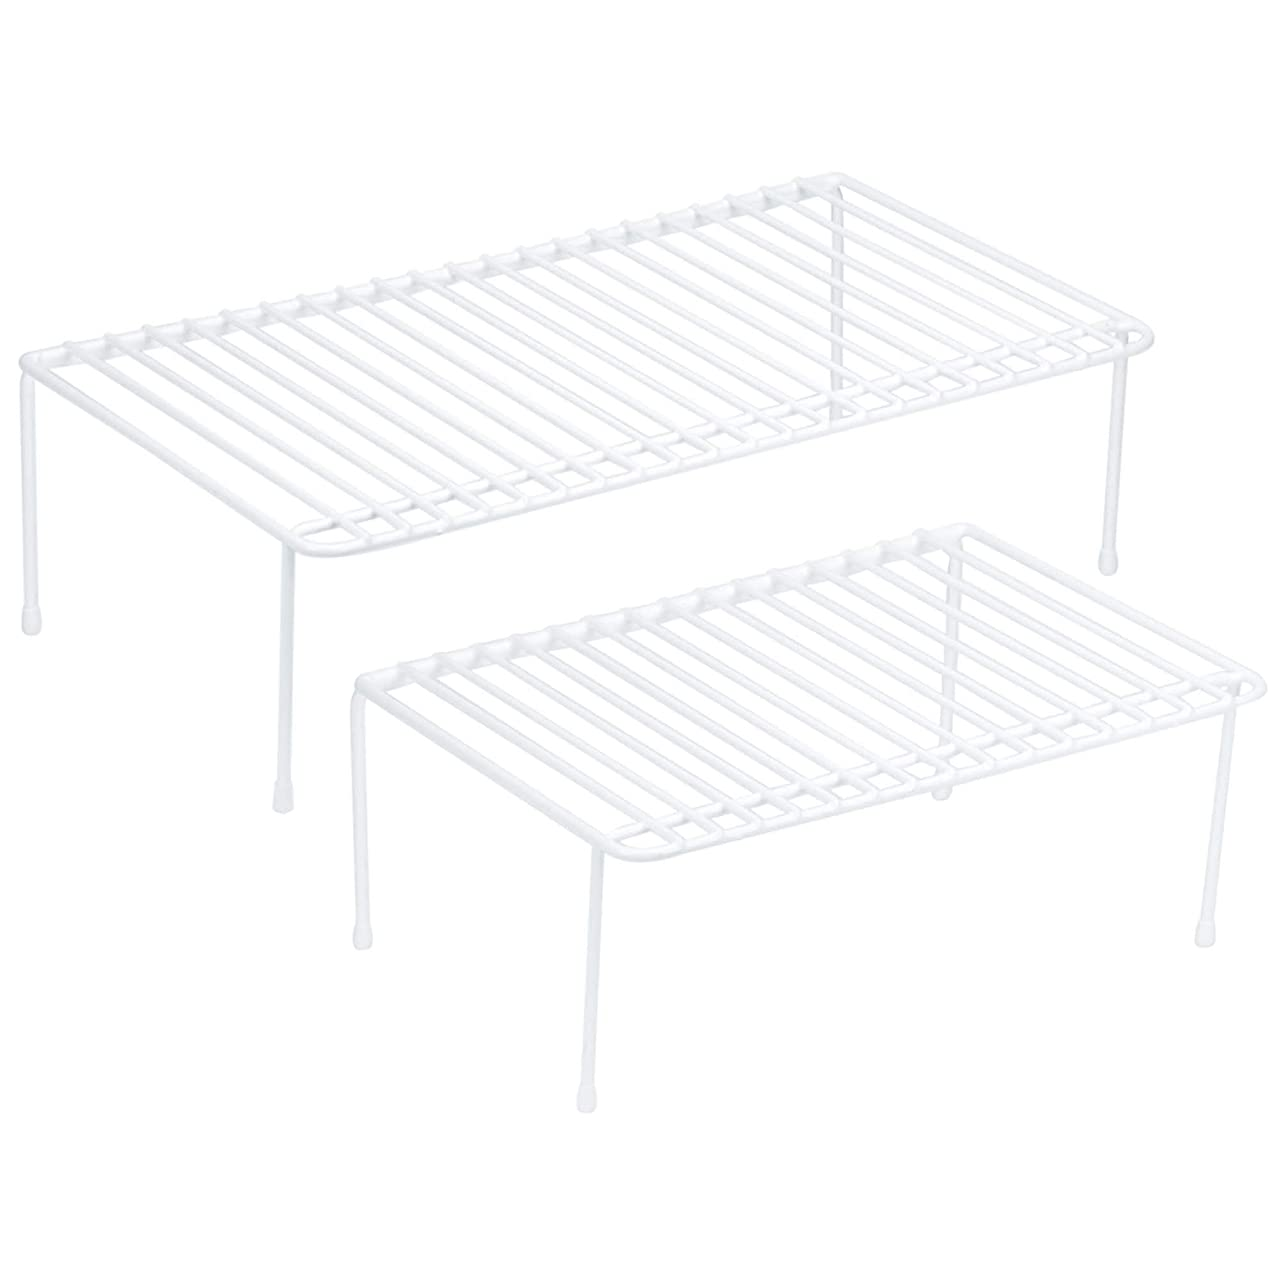 DecorRack Set of 2 Counter Helper Wire Shelf, Kitchen Cabinet Shelf Organizer, Closet and Pantry Storage Extra Rack, Freezer Instant Space Organizer, Steel with White Plastic Coating